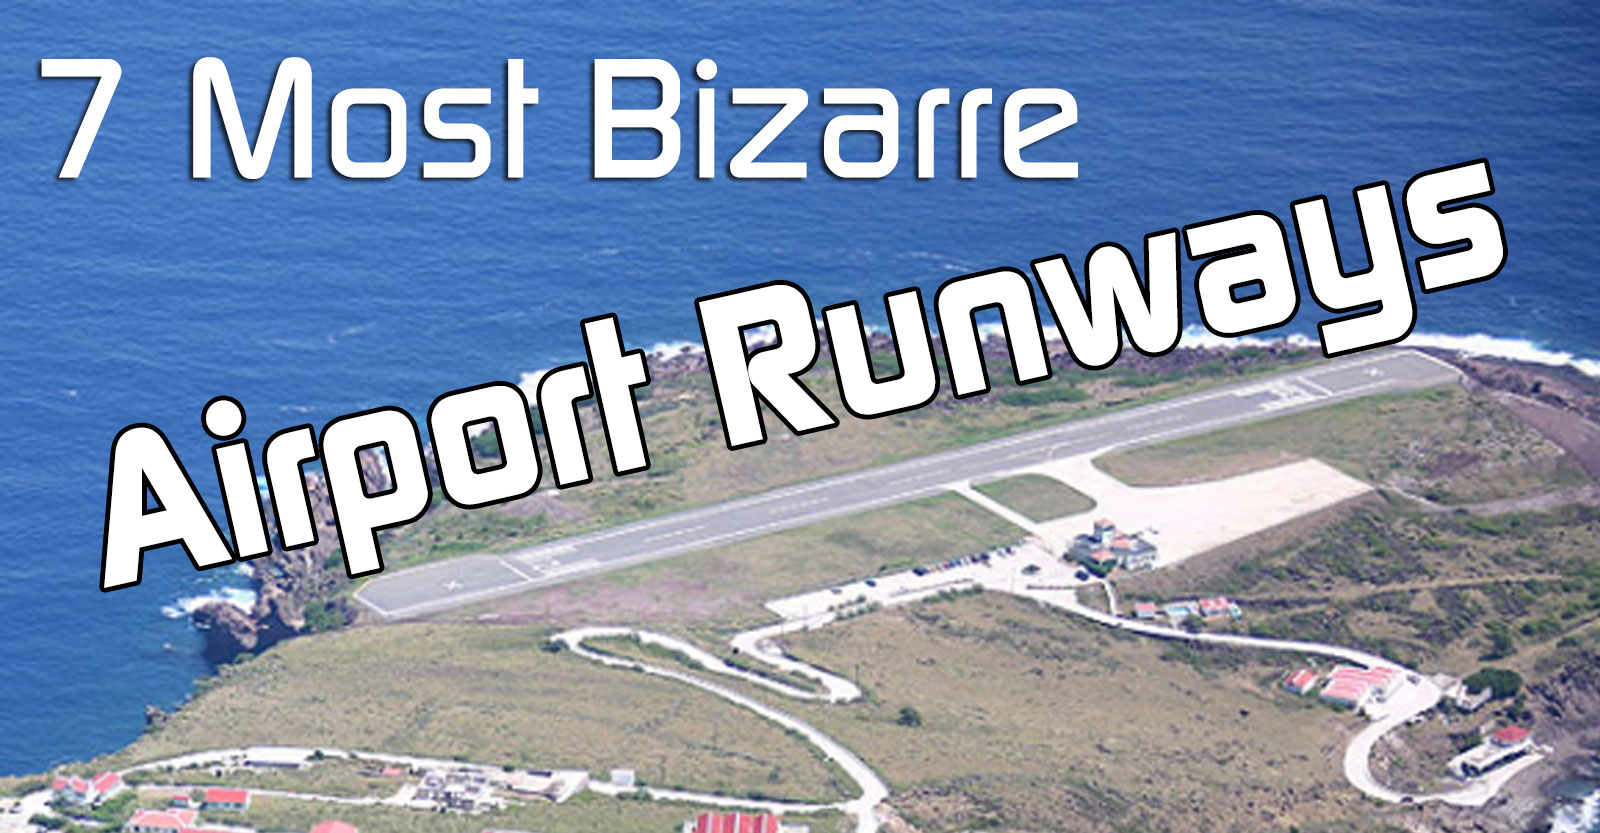 7BizarreAirportRunways